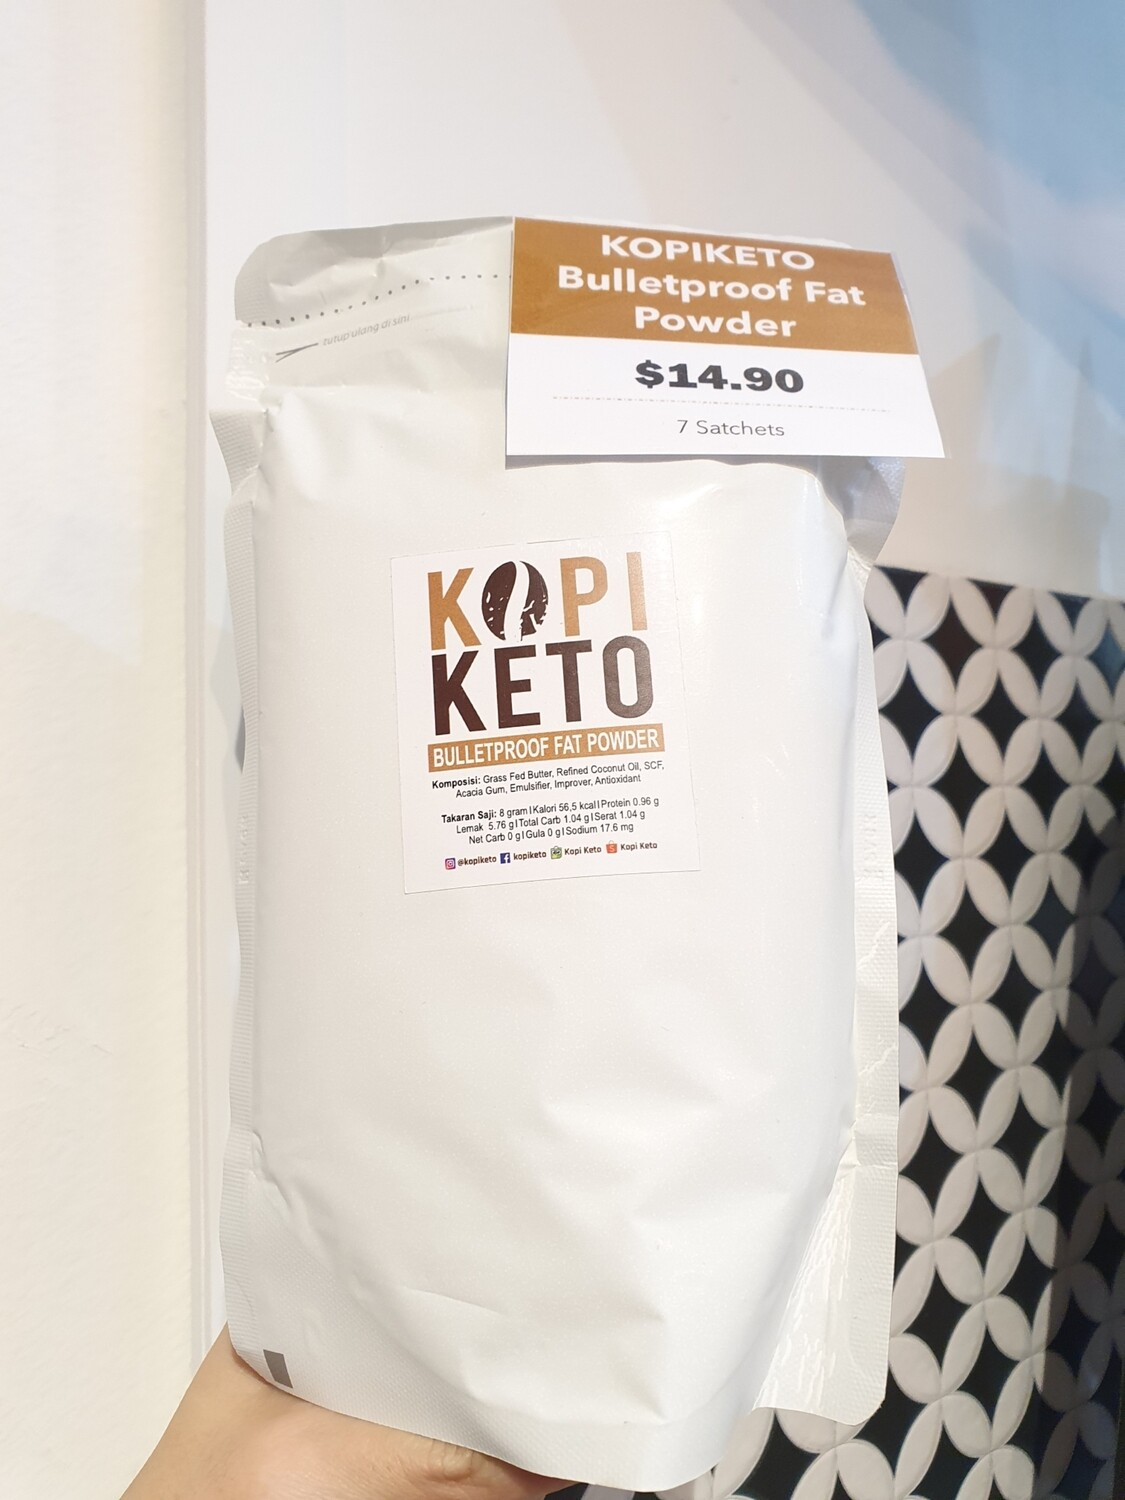 Kopi Keto Bulletproof Fat Powder (7 Sachets)